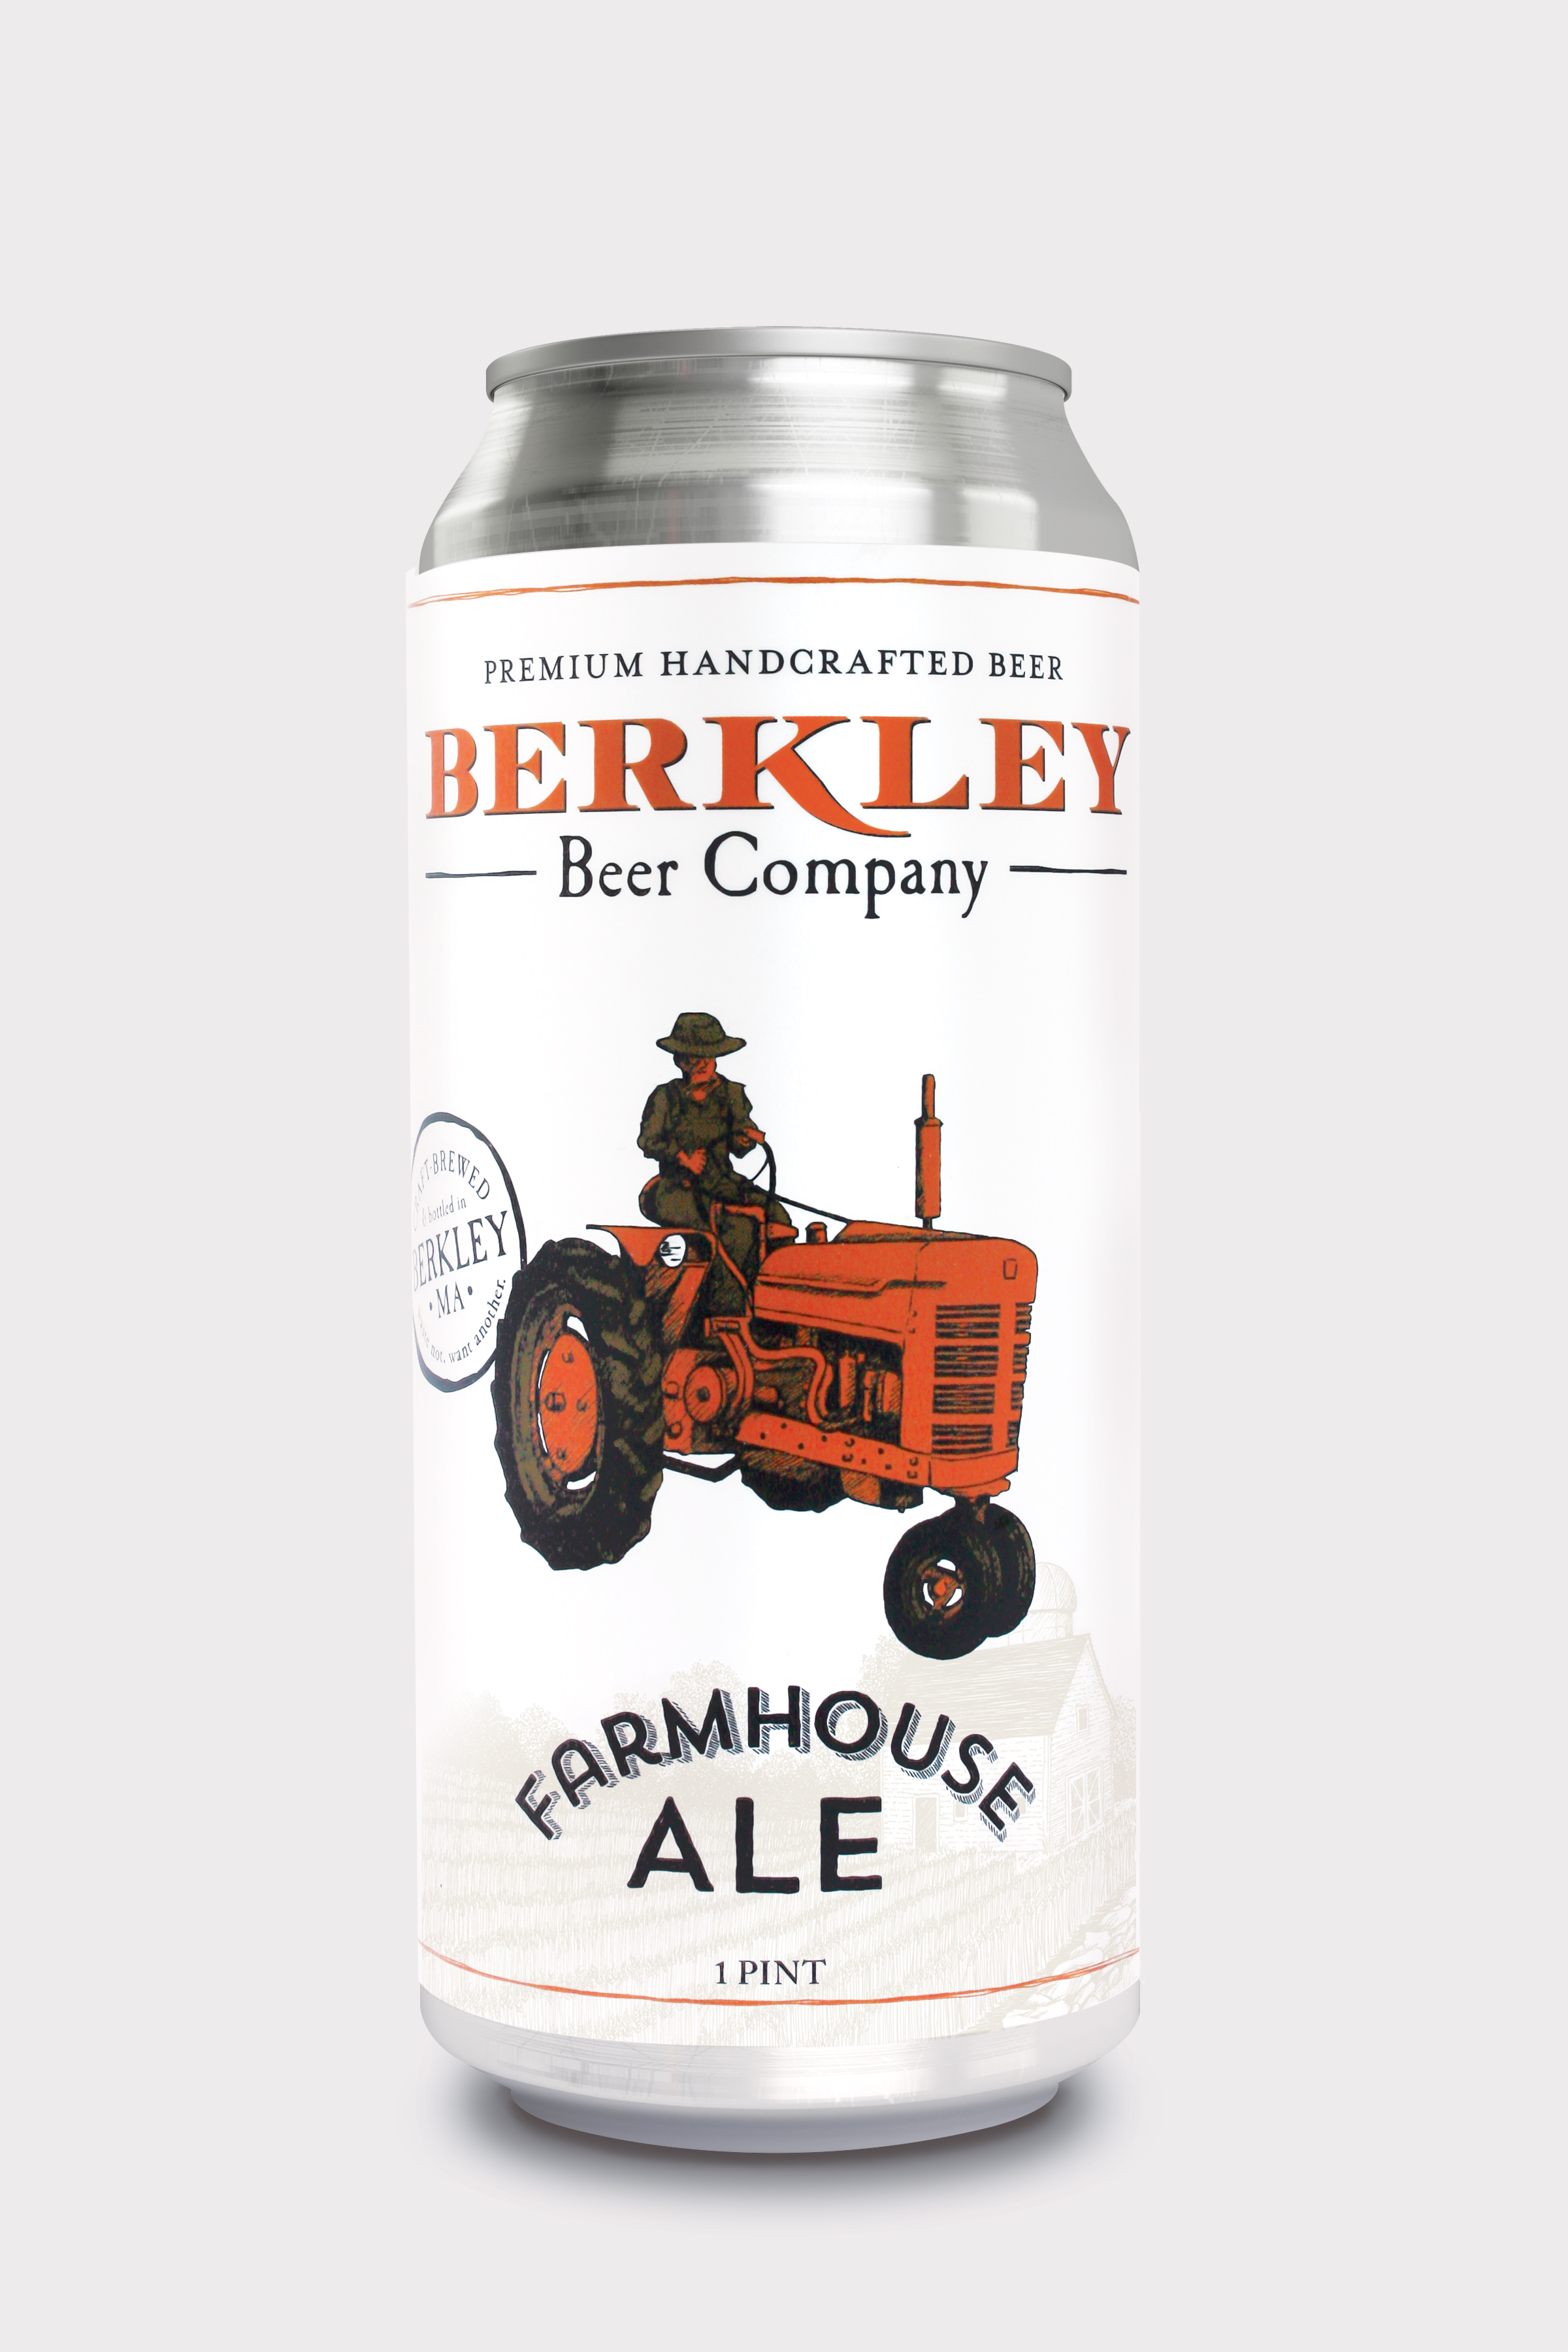 Farmhouse Ale 5%  The Berkley Farmhouse Ale is our version of a saison. Carefully brewed with specialty hops and citrus undertones, this well-balanced summer ale is purely refreshing.